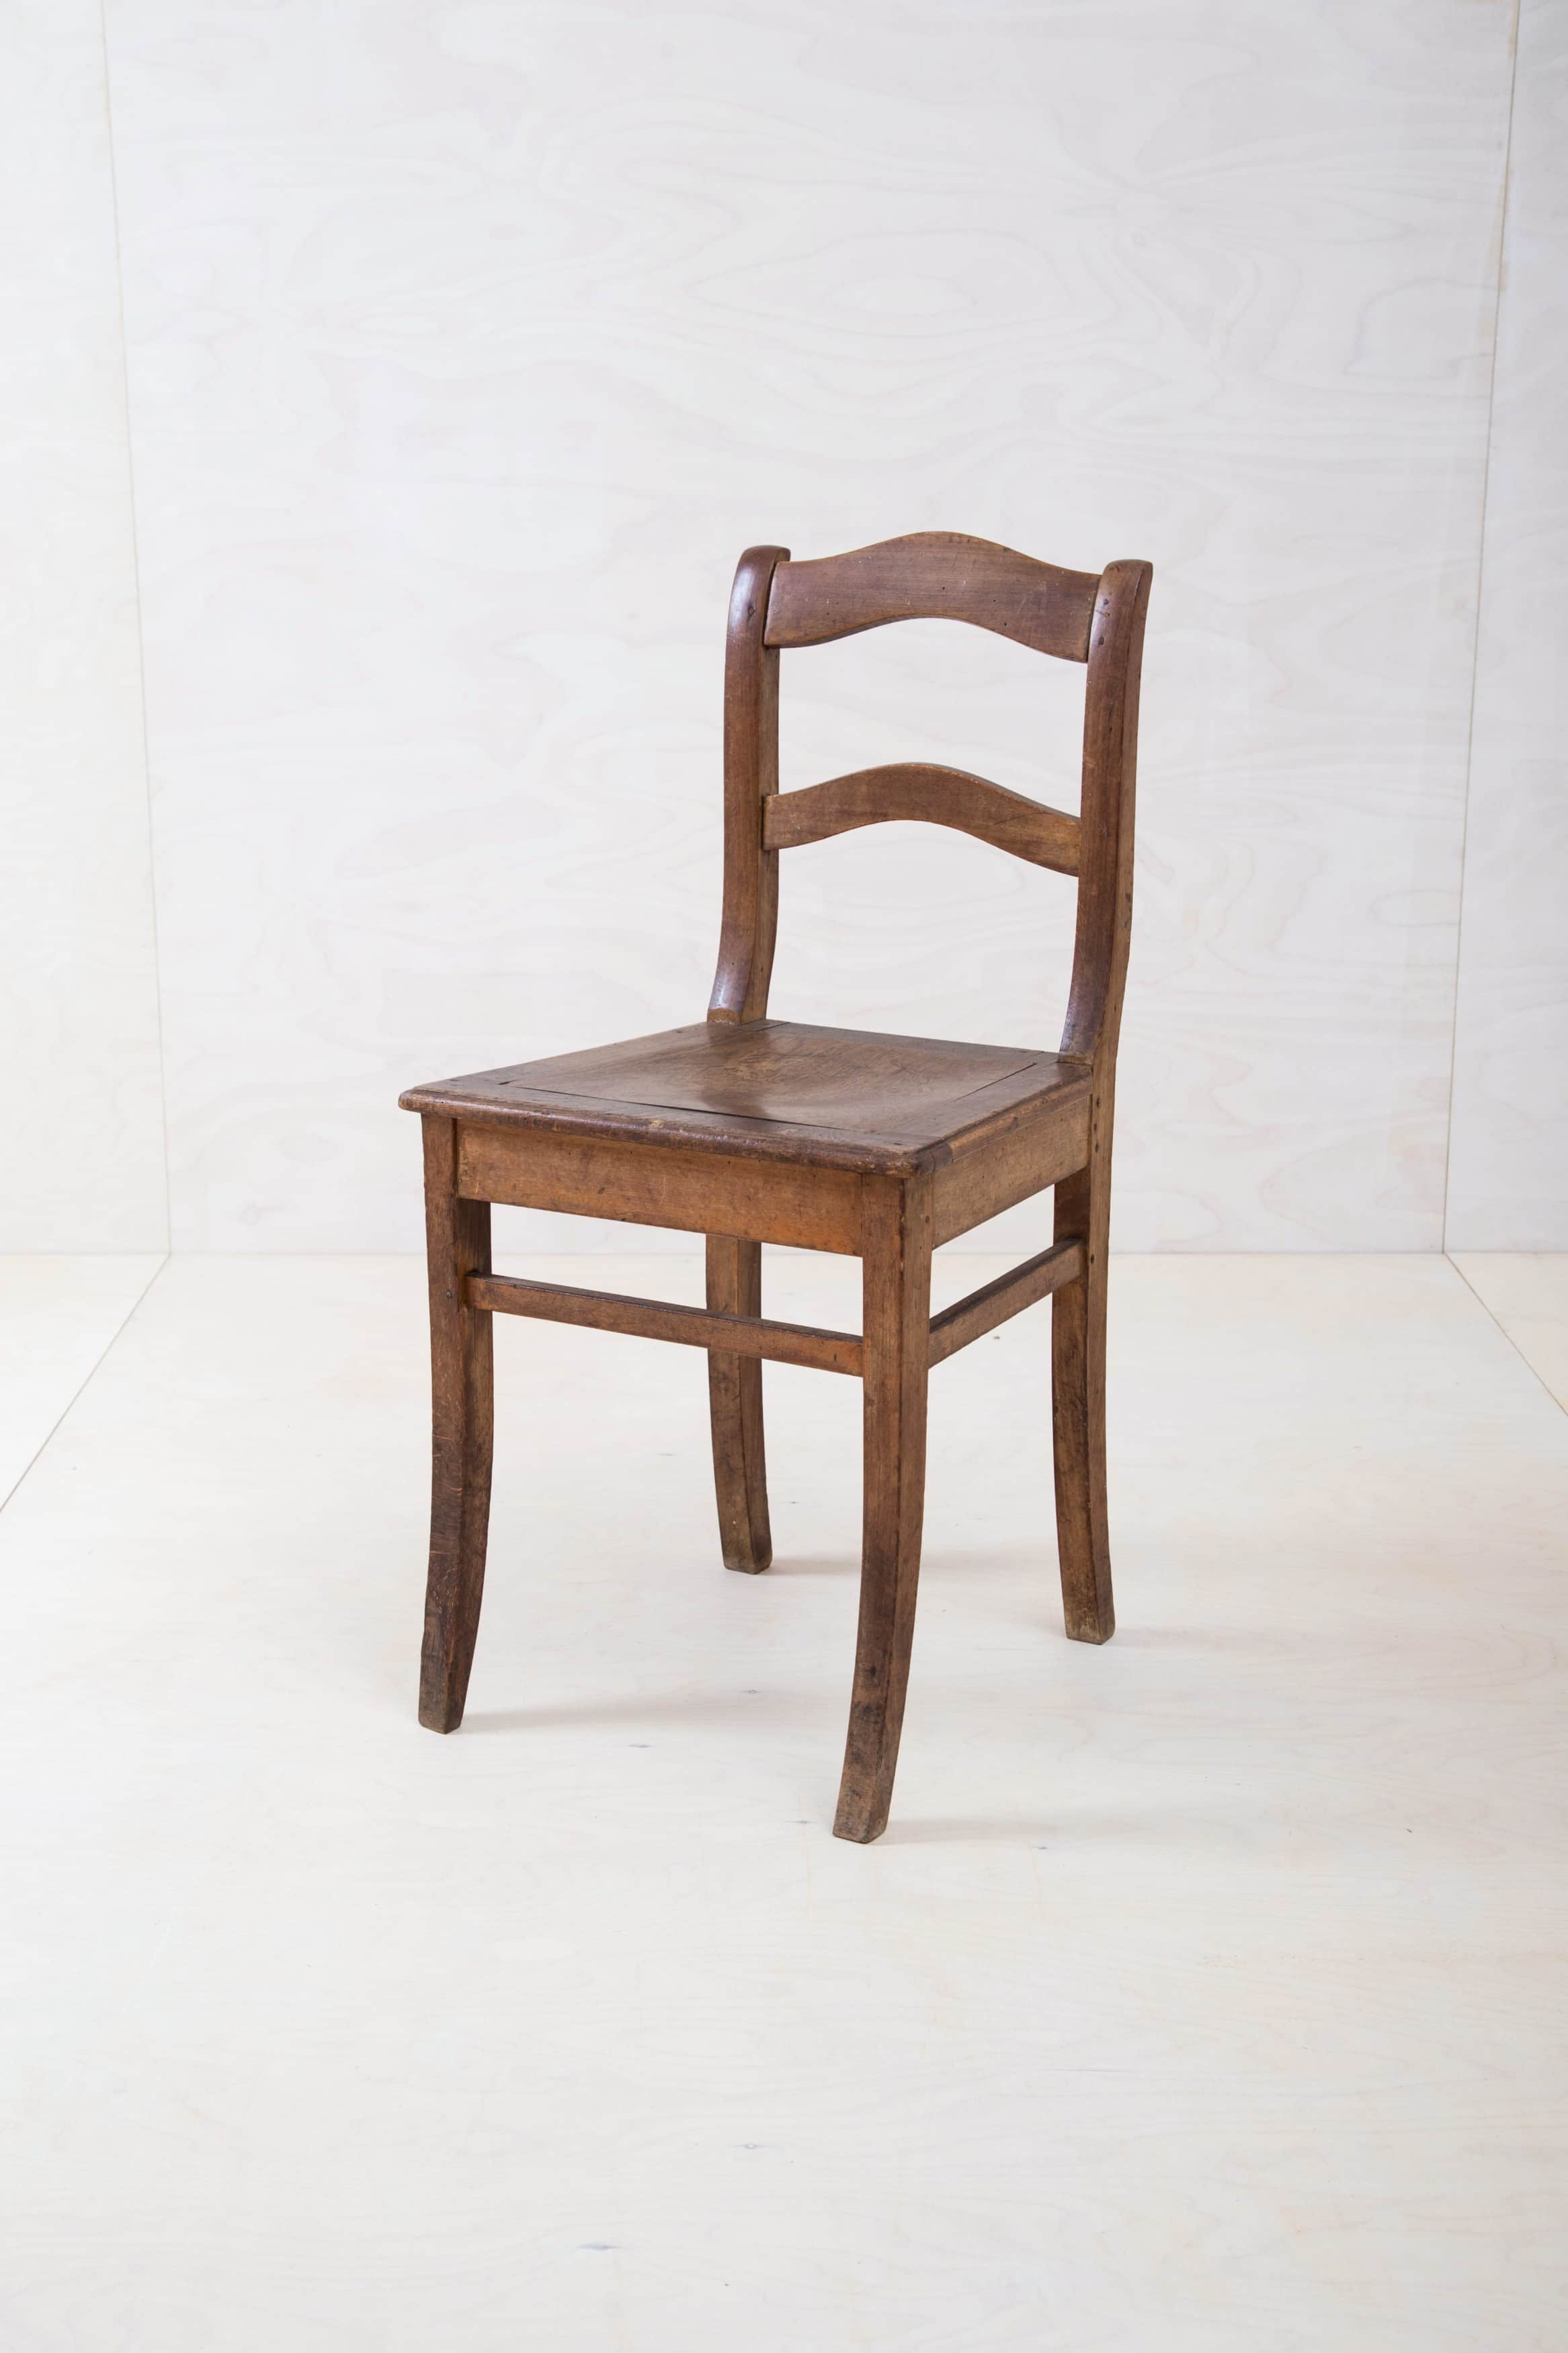 Vintage pub chairs for rent, rental furniture & event supplies